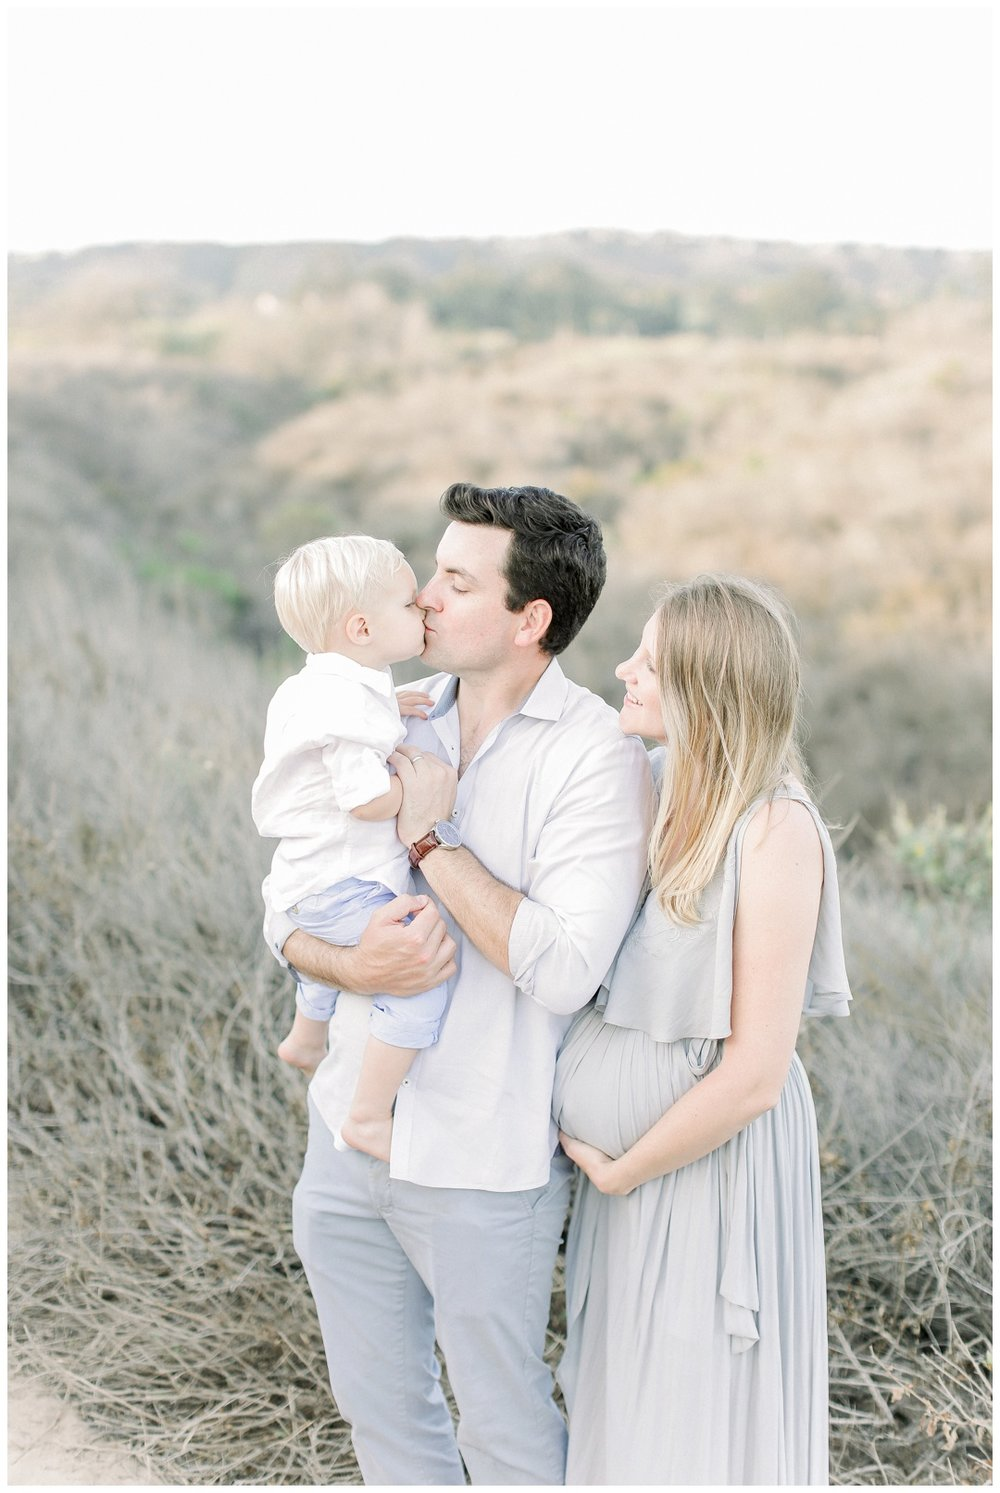 The_Epler's_Family_Newport_Beach_Family_Photographer_Orange_County_Family_Photography_Cori_Kleckner_Photography_Orange_County_Beach_Photographer_Family_Photos_Session_Crystal_Cove_Session__1454.jpg